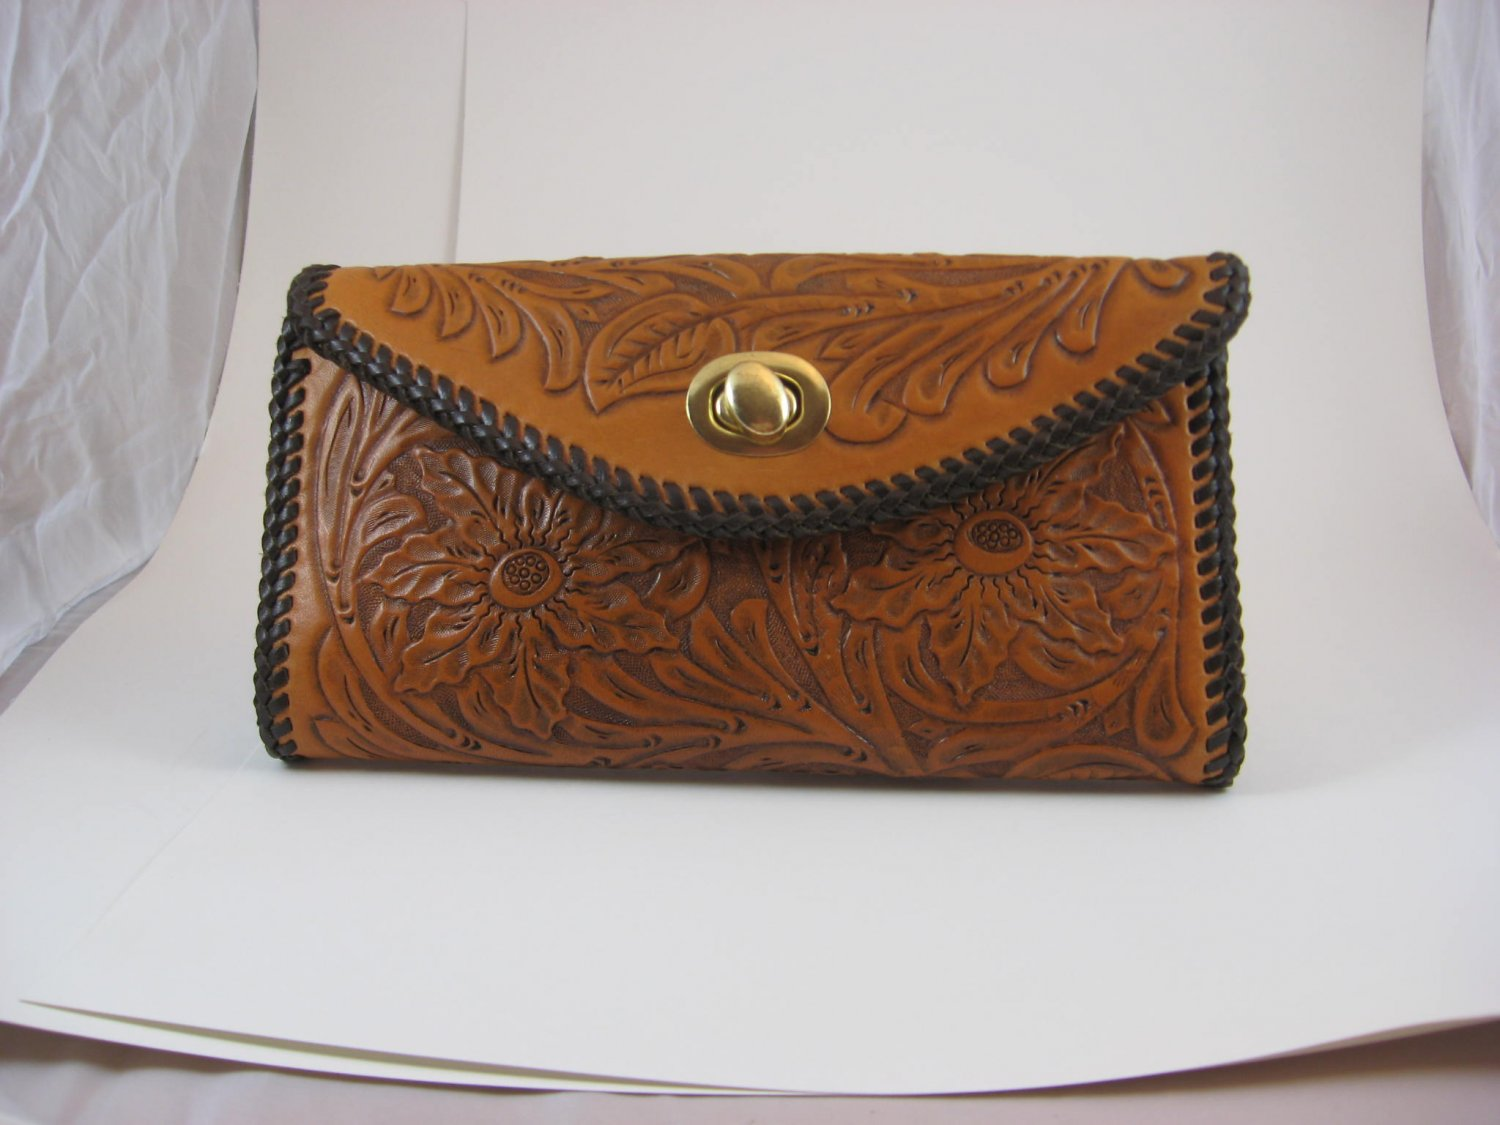 Phoenix Clutch Purse, Chestnut Tan, Brown Lacing, Handtooled Leather, Western Floral PU0002